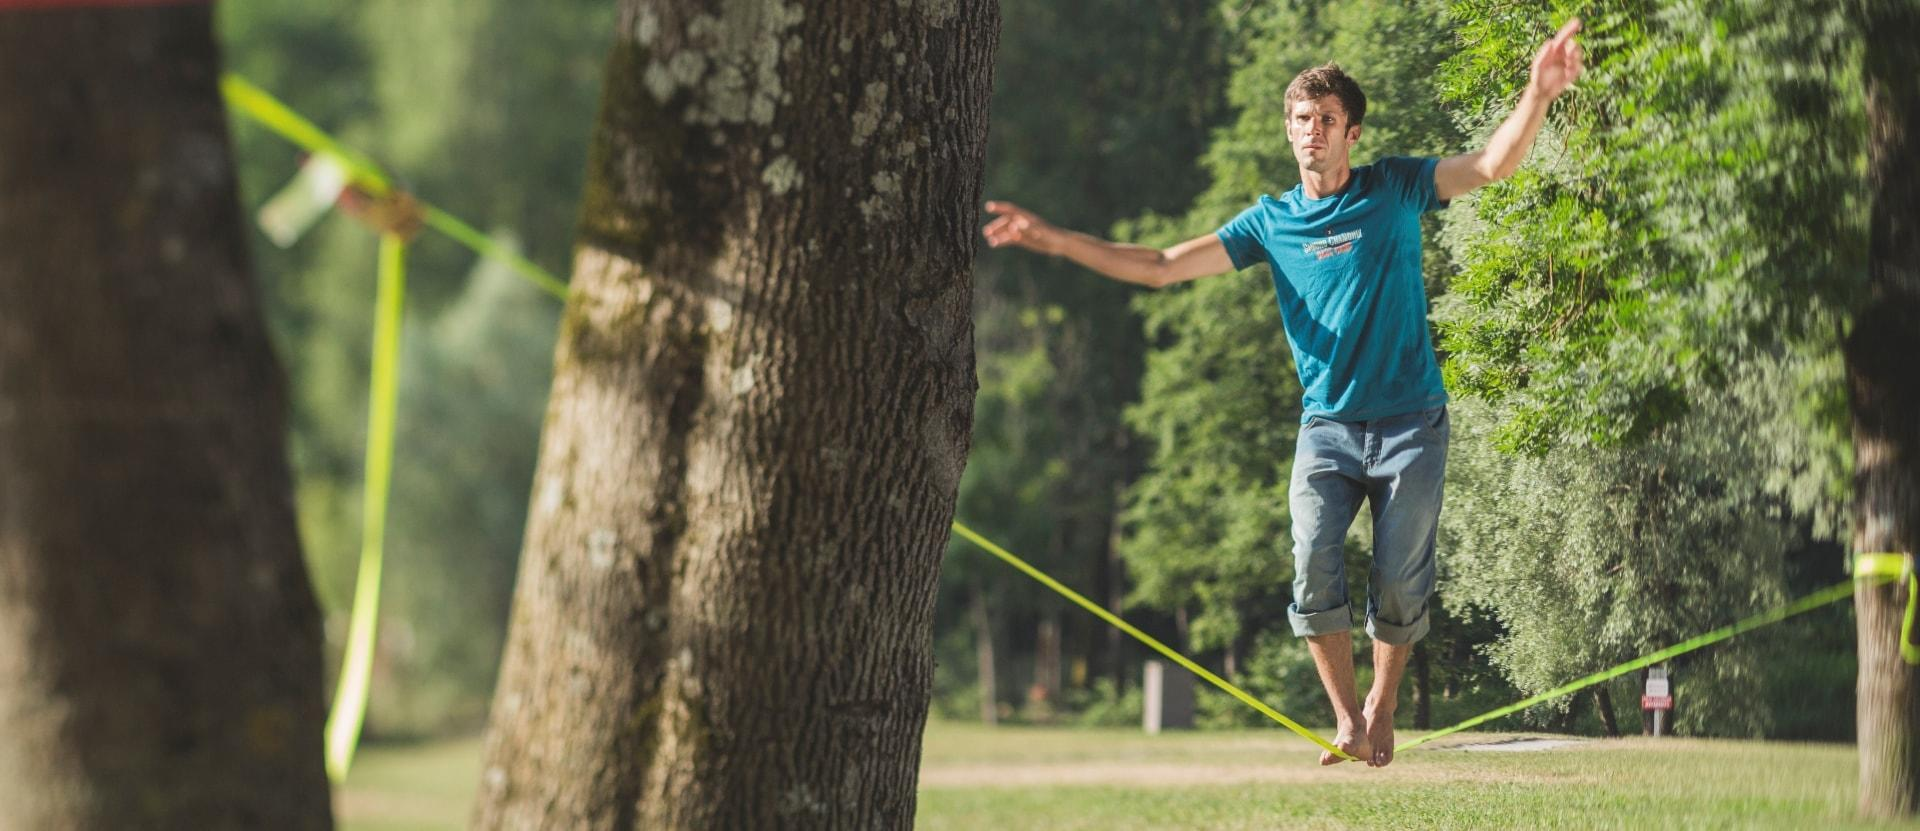 An Expert's Tips: How To Choose The Right Slackline